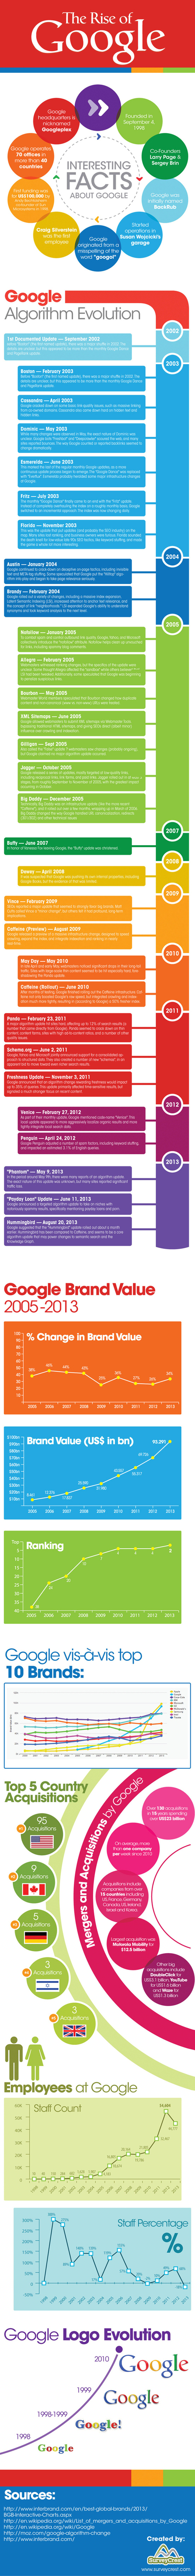 The Powerful Rise of Google [Infographic] | Startup Revolution | Scoop.it